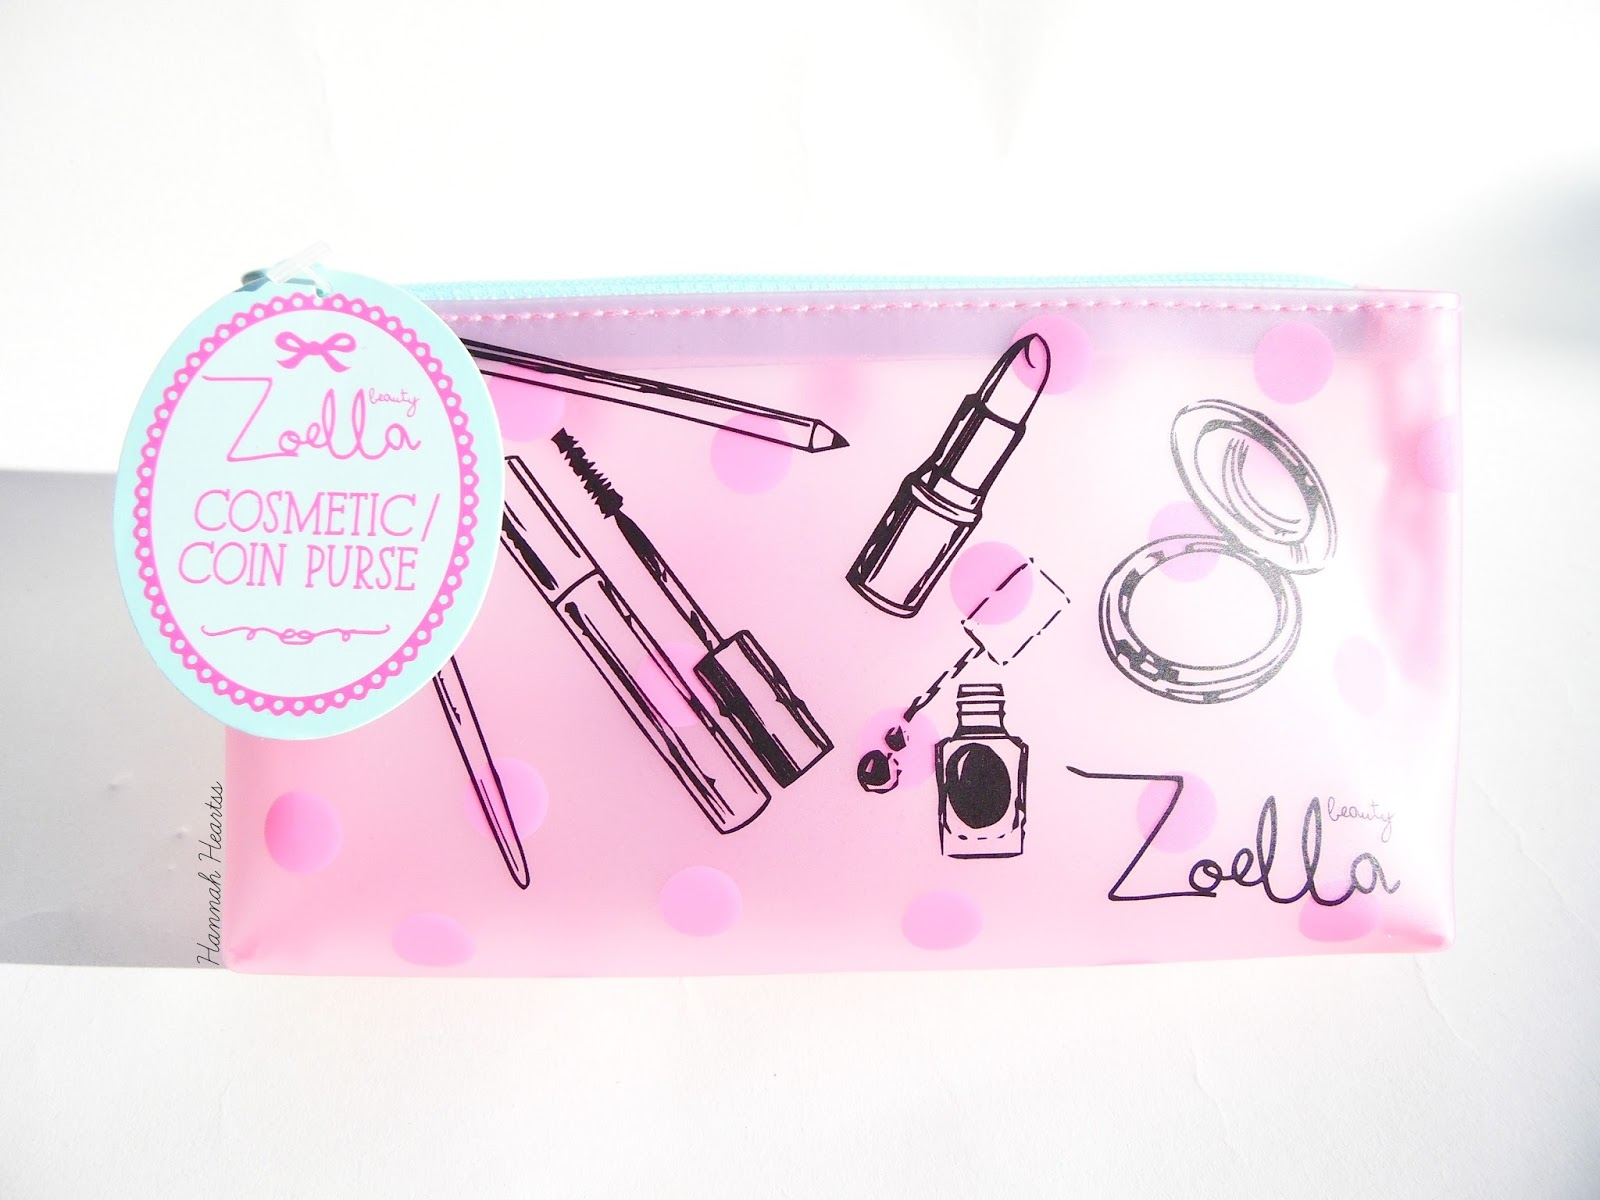 Zoella Beauty Tutti Fruity Range